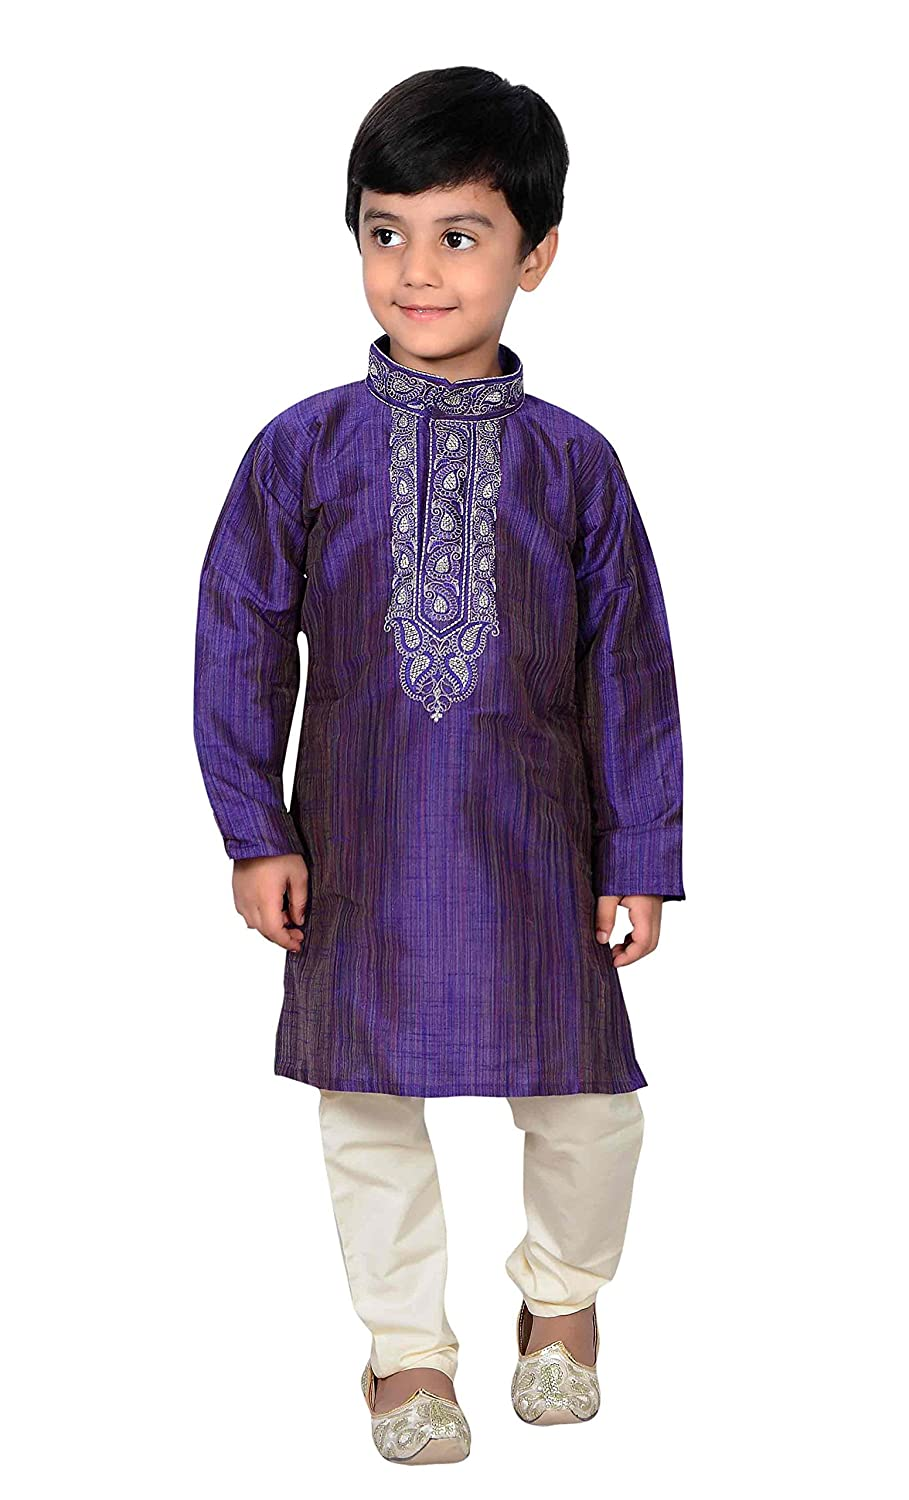 Indian Boys Sherwani Kurta with Churidar pajama for Bollywood theme party 857 Blue Kurta Set - 857